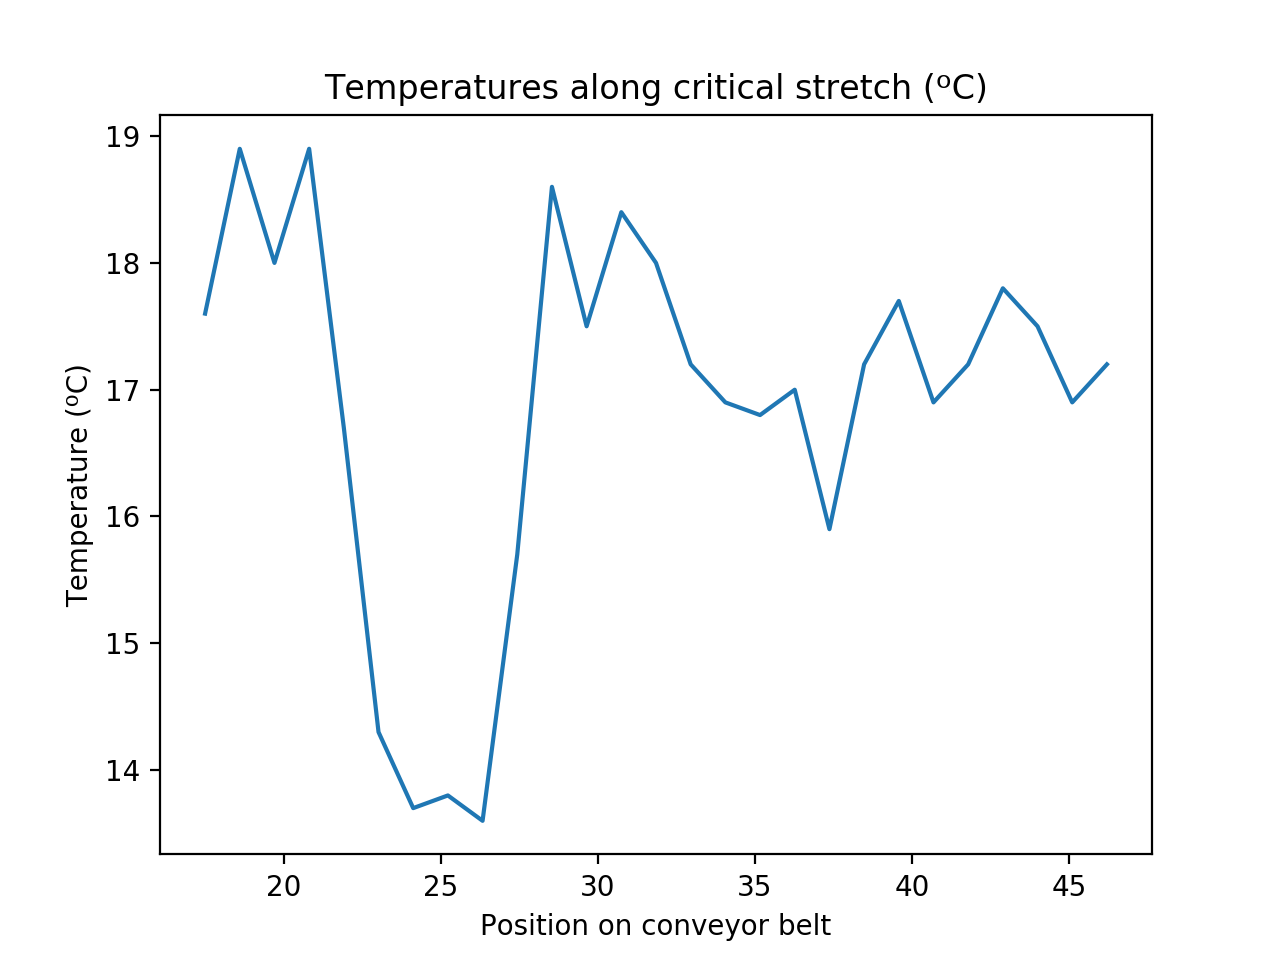 Plot of Food Belt Temperature with np.linspace